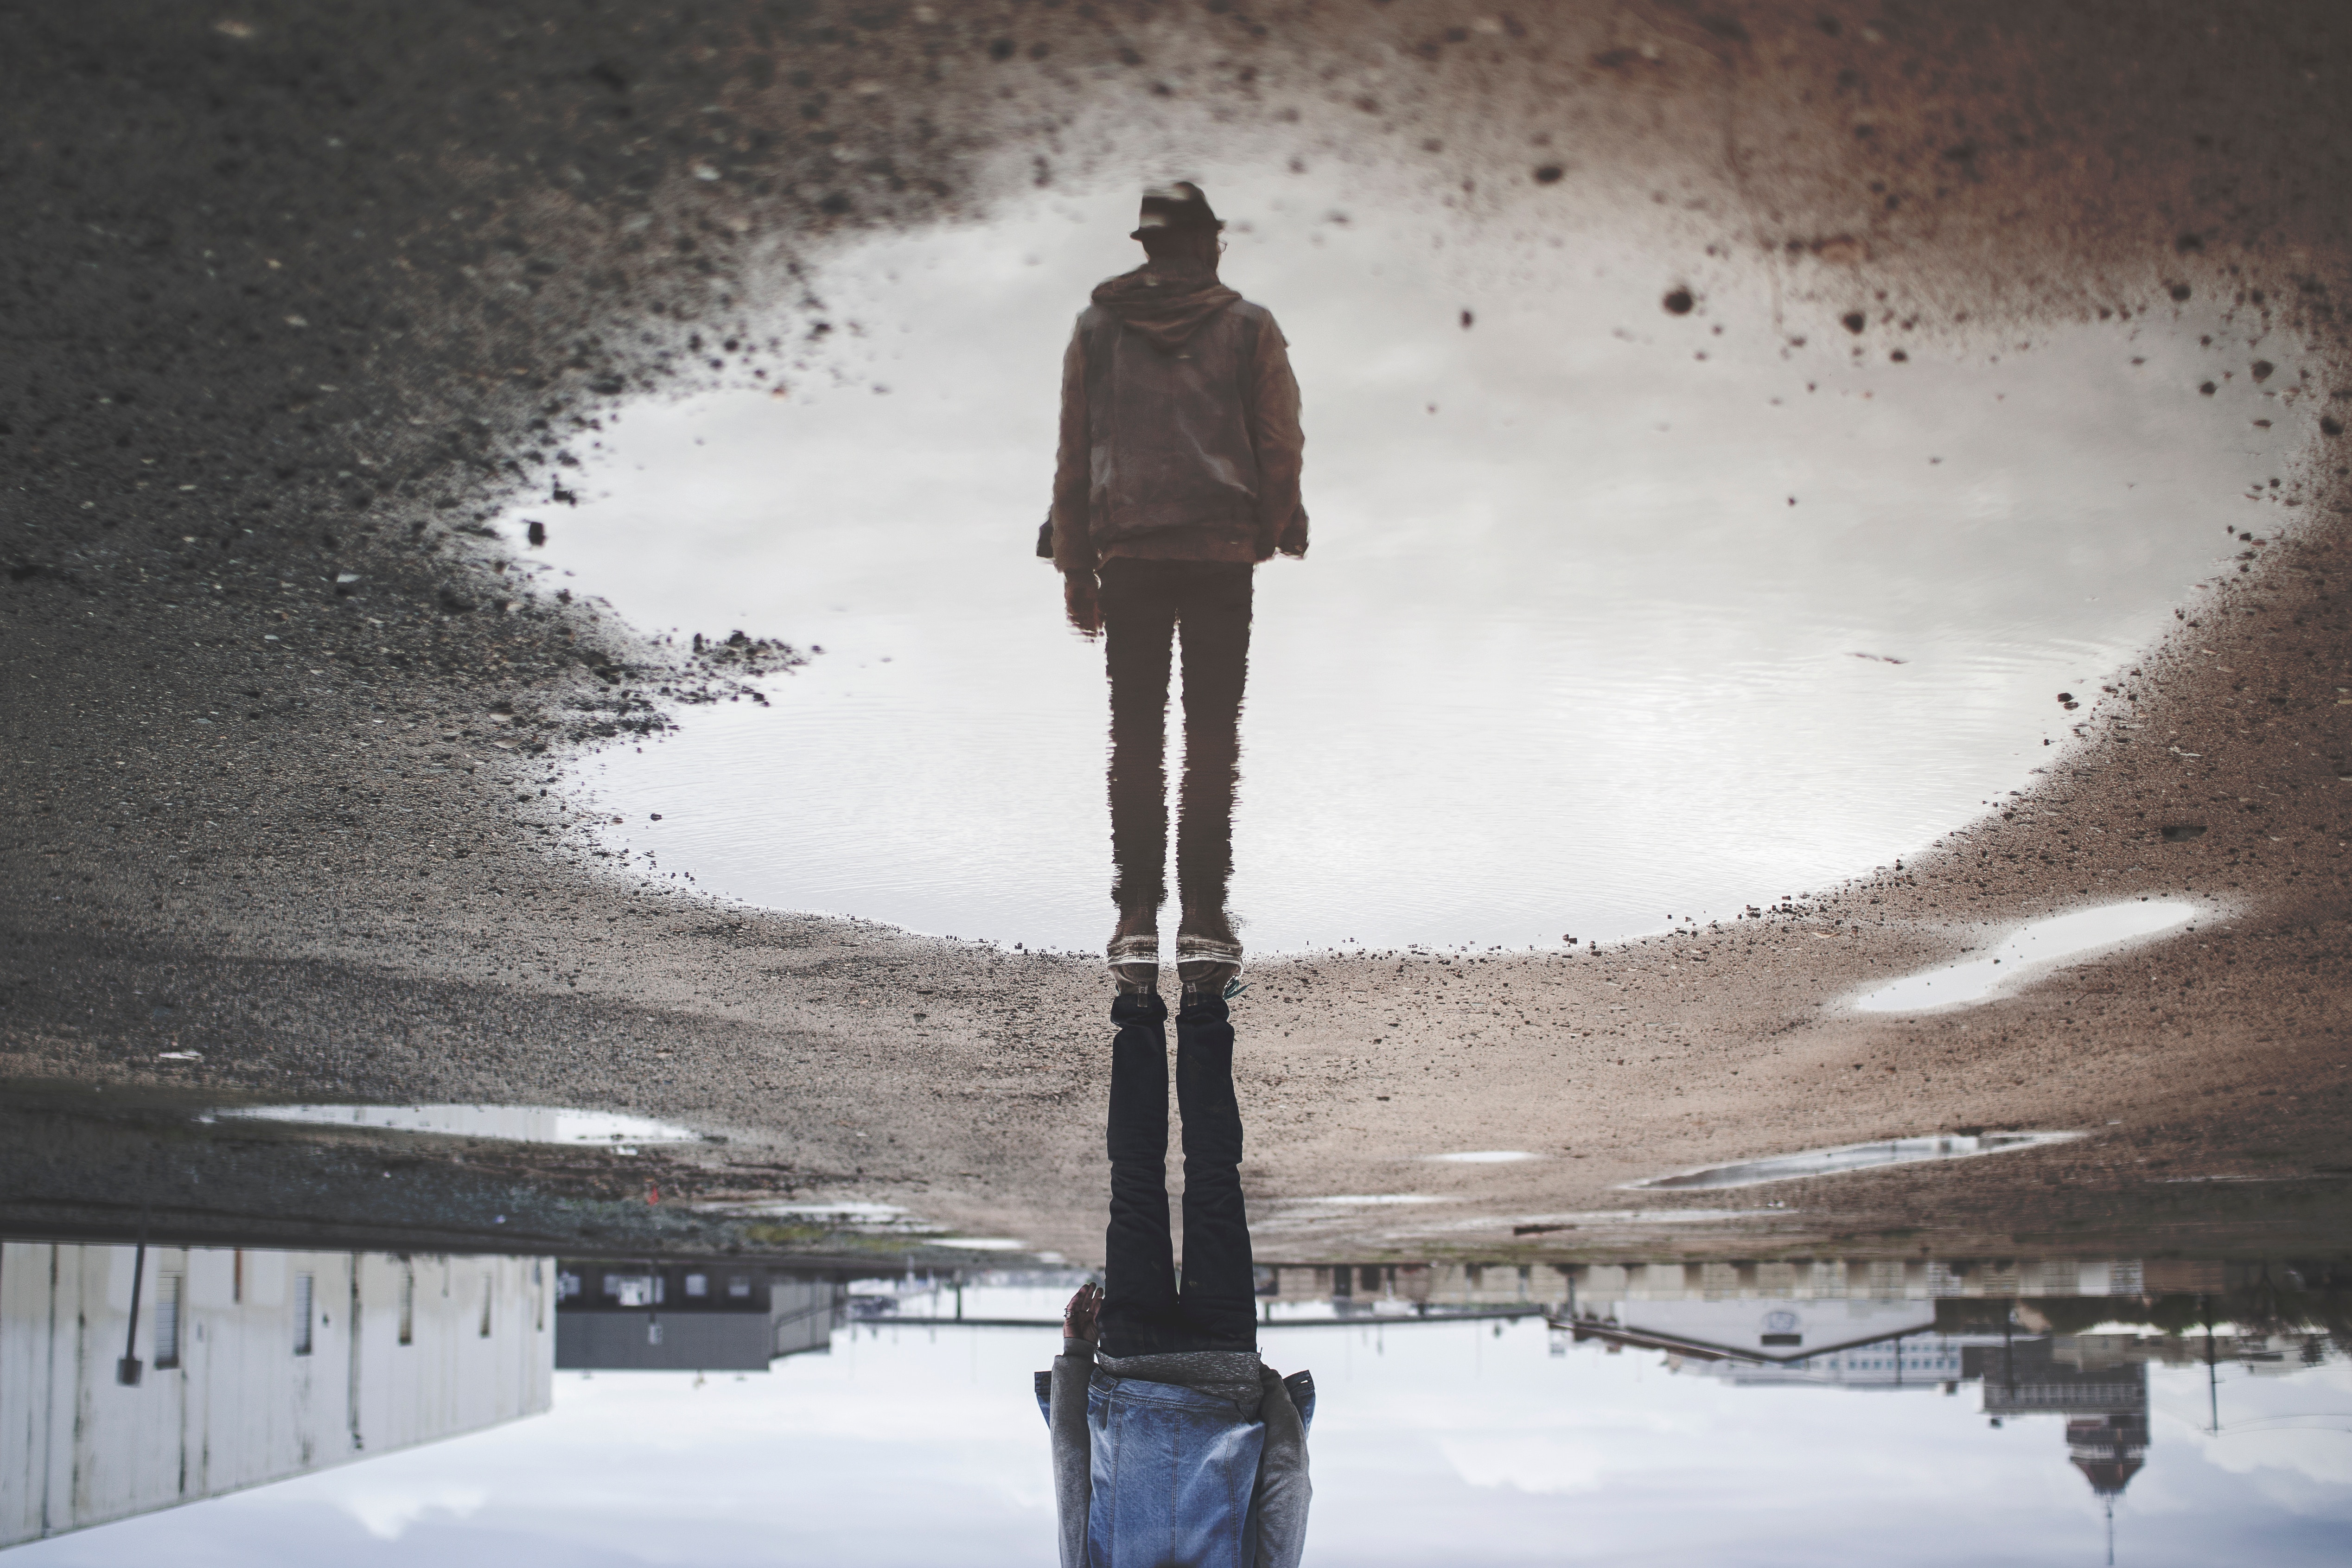 Man standing by puddle with reflection